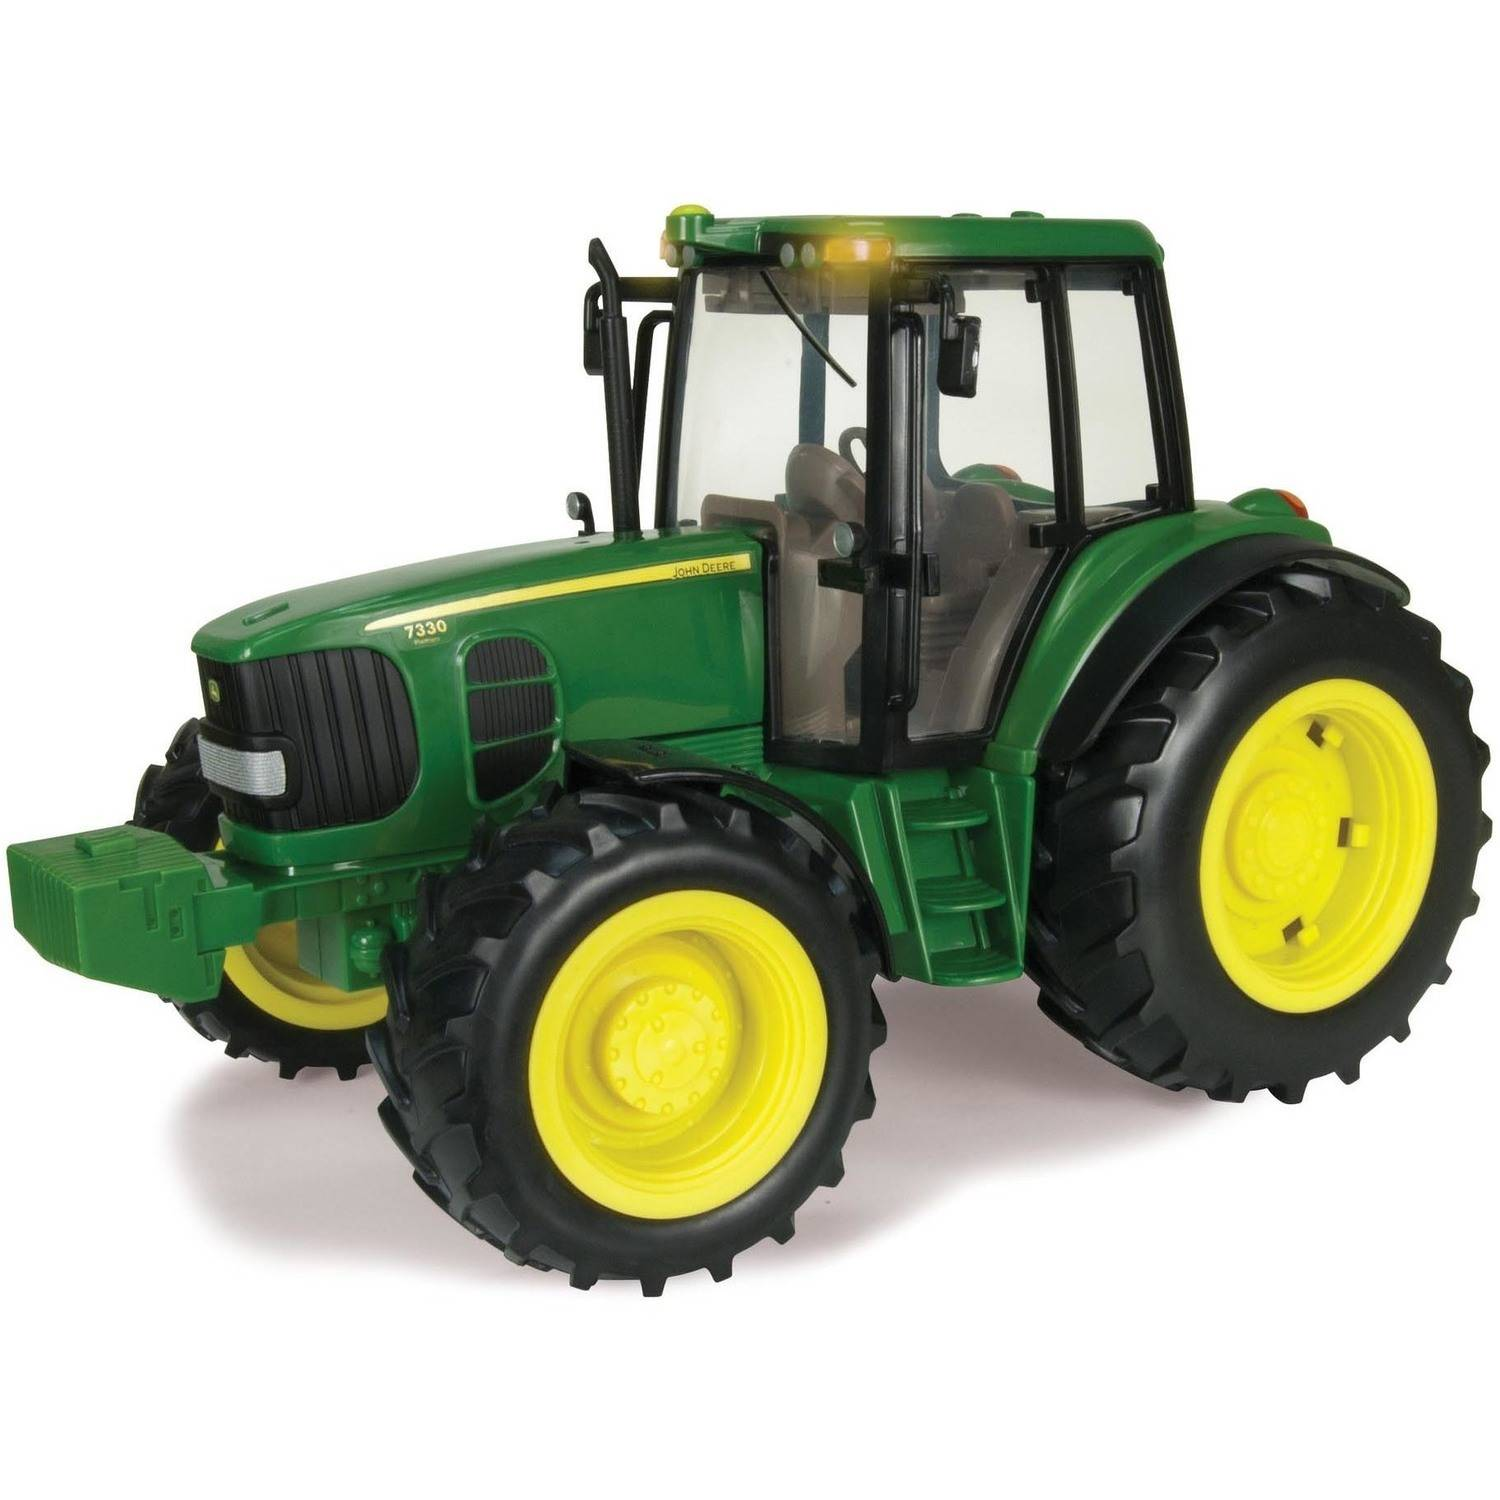 Ertl Big Farm Lights and Sounds John Deere Tractor